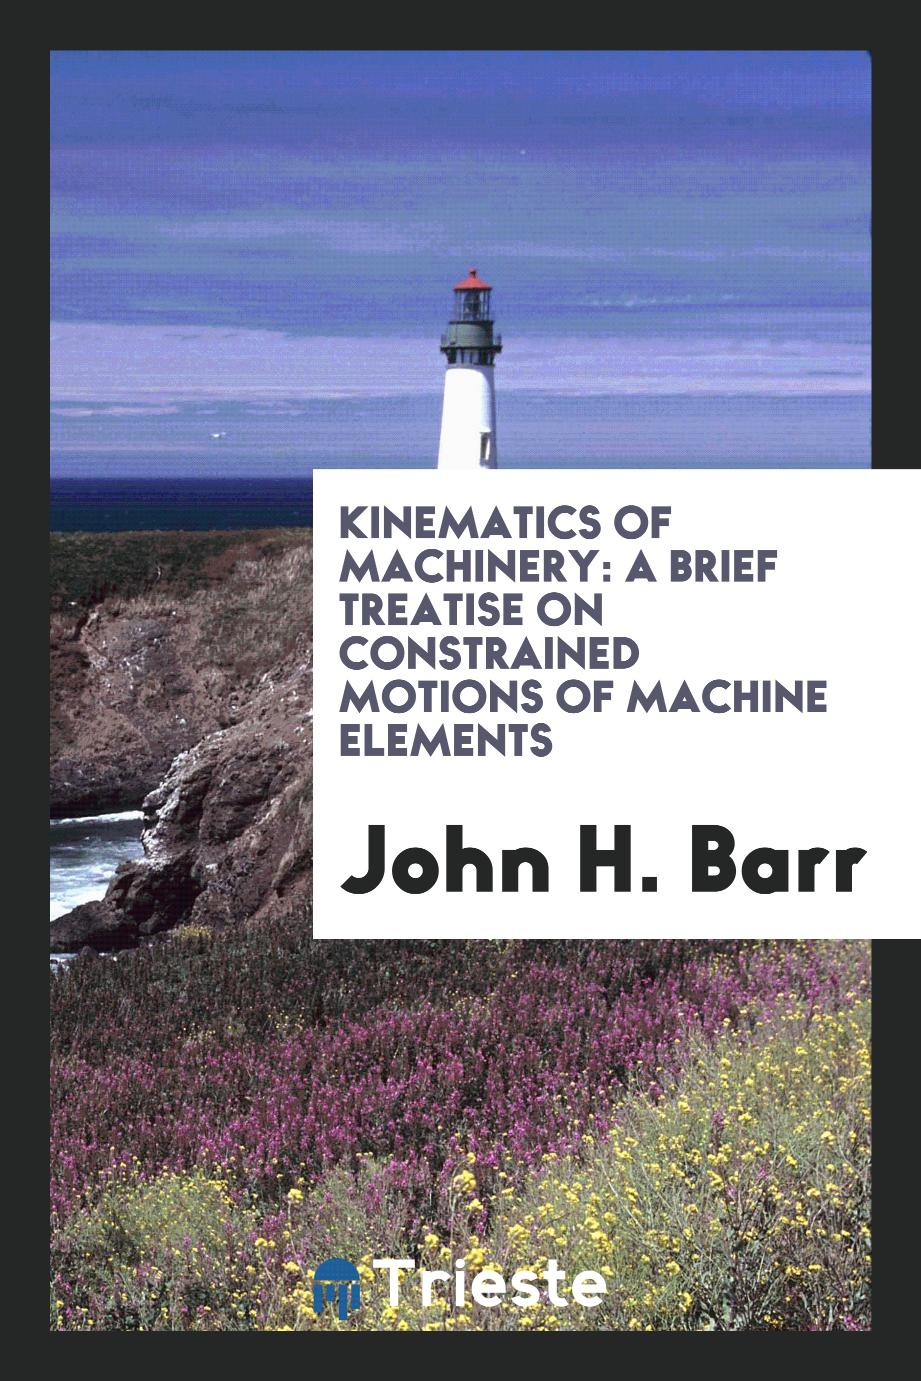 Kinematics of Machinery: A Brief Treatise on Constrained Motions of Machine Elements